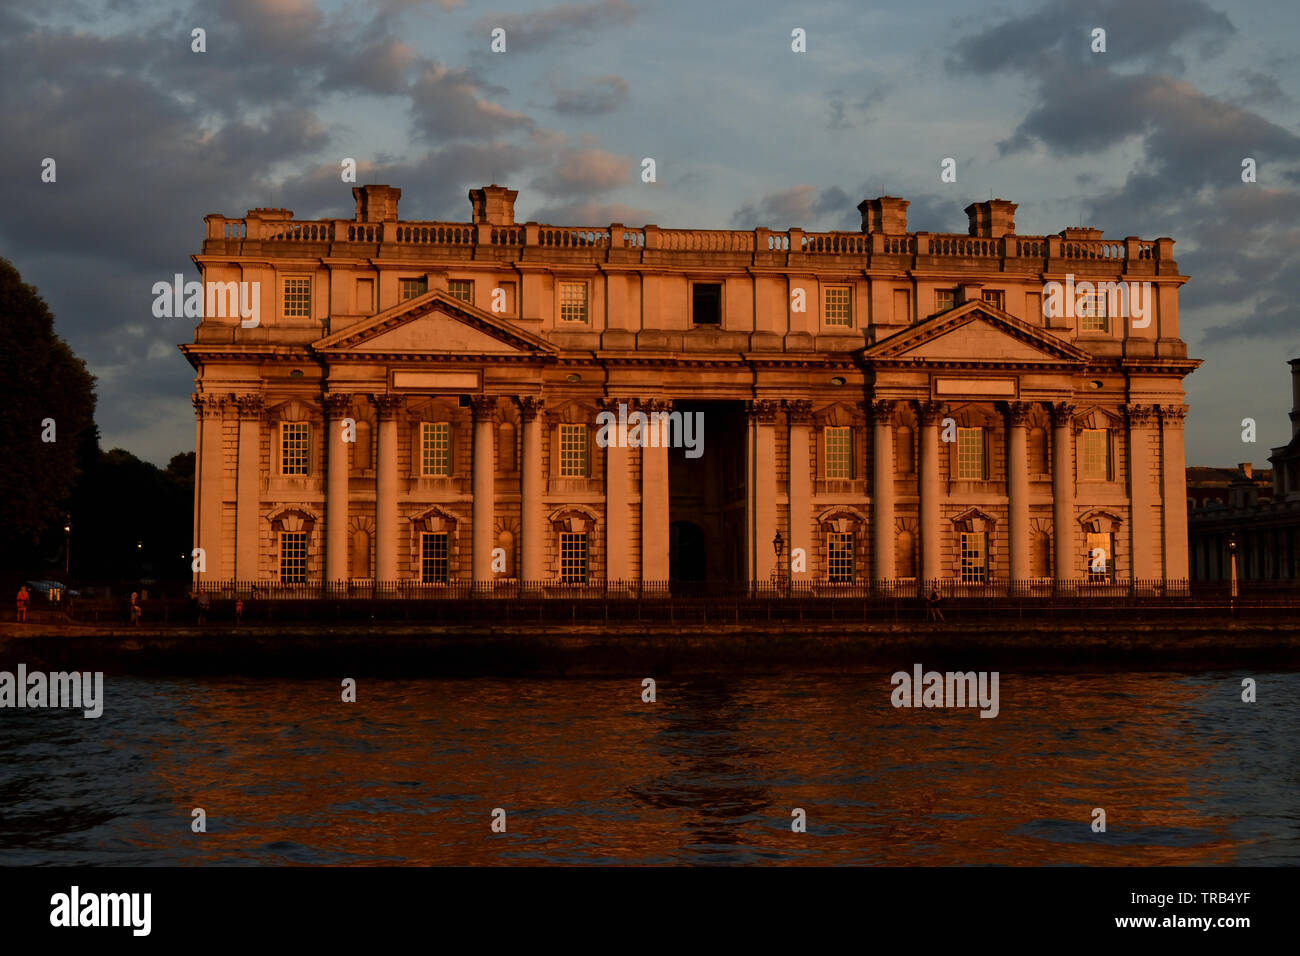 Building photographed on the bank of the River Thames, London. - Stock Image